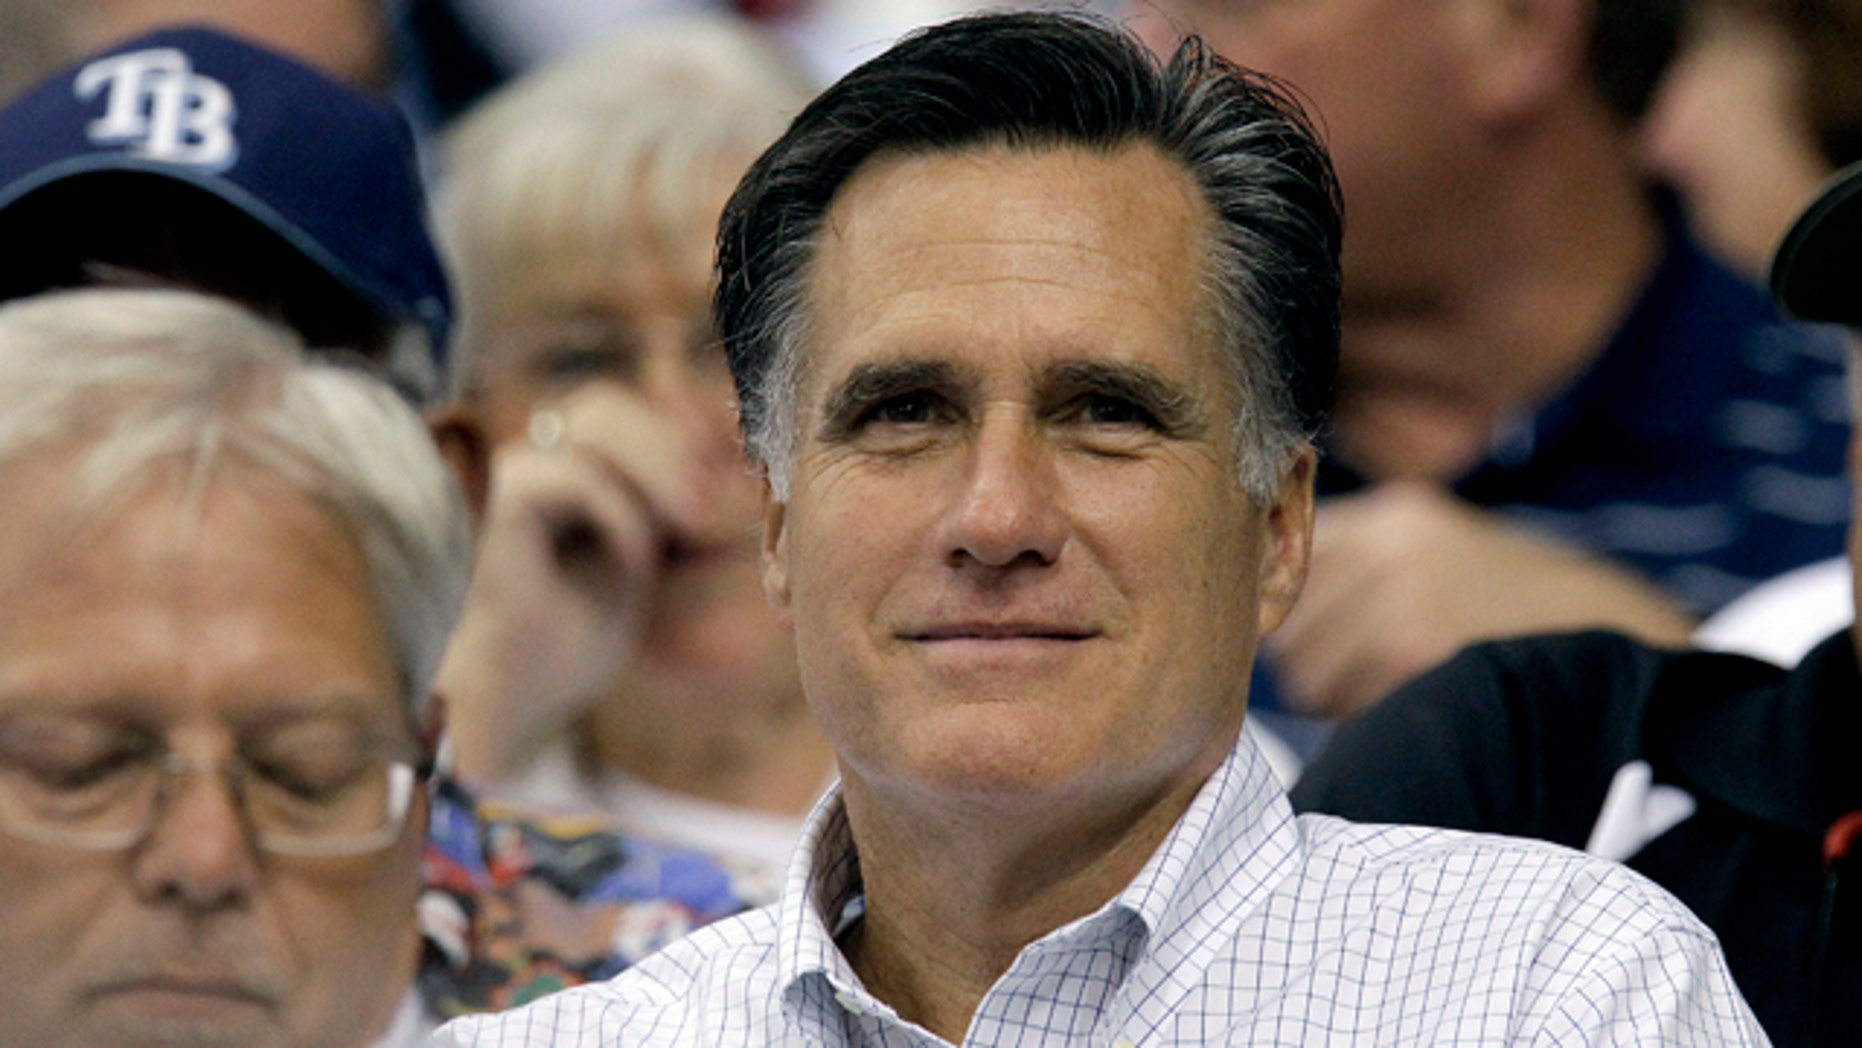 June 15: GOP hopeful Mitt Romney watches a baseball game between the Tampa Bay Rays and the Boston Red Sox. Perhaps there's no better evidence of his frontrunner status than the attacks leveled against his abortion stance by fellow candidates.